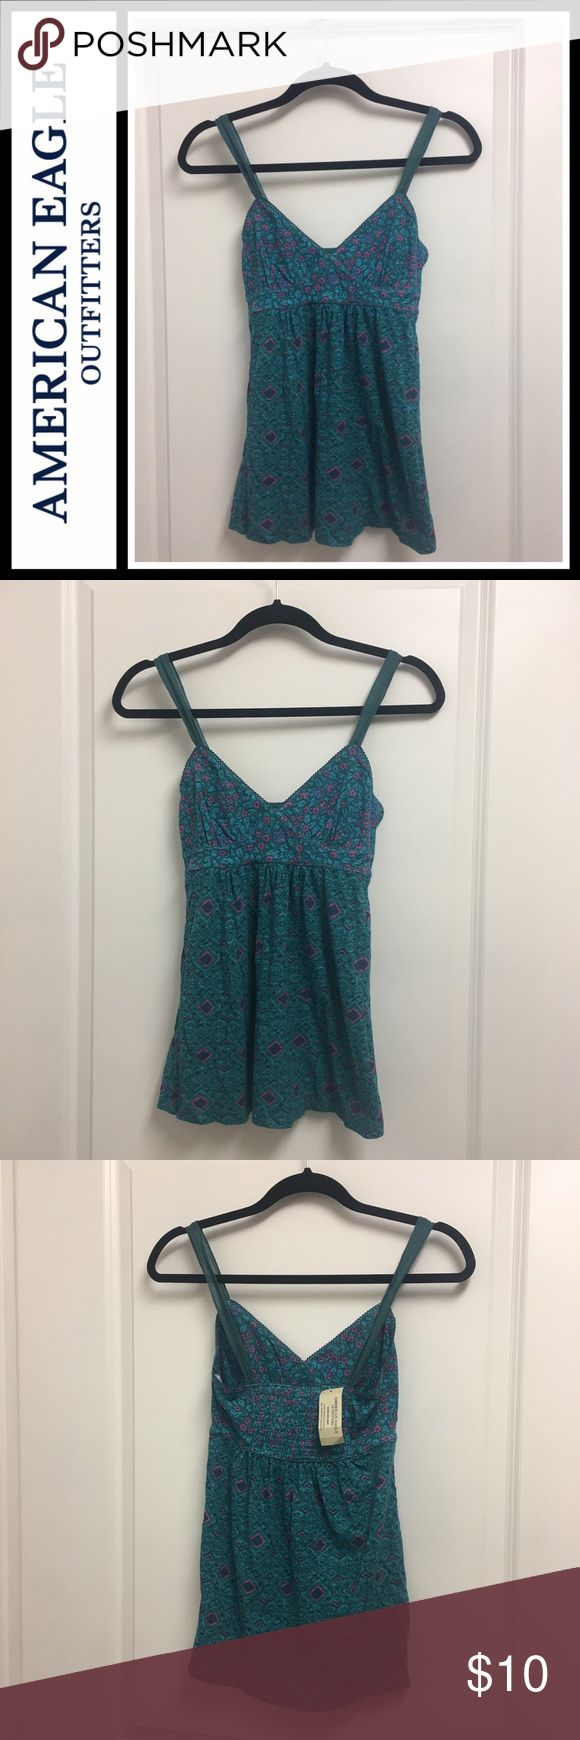 American Eagle 🦅 aztec floral print tank NWT New with tags, smocked back - size small American Eagle Outfitters Tops Tank Tops